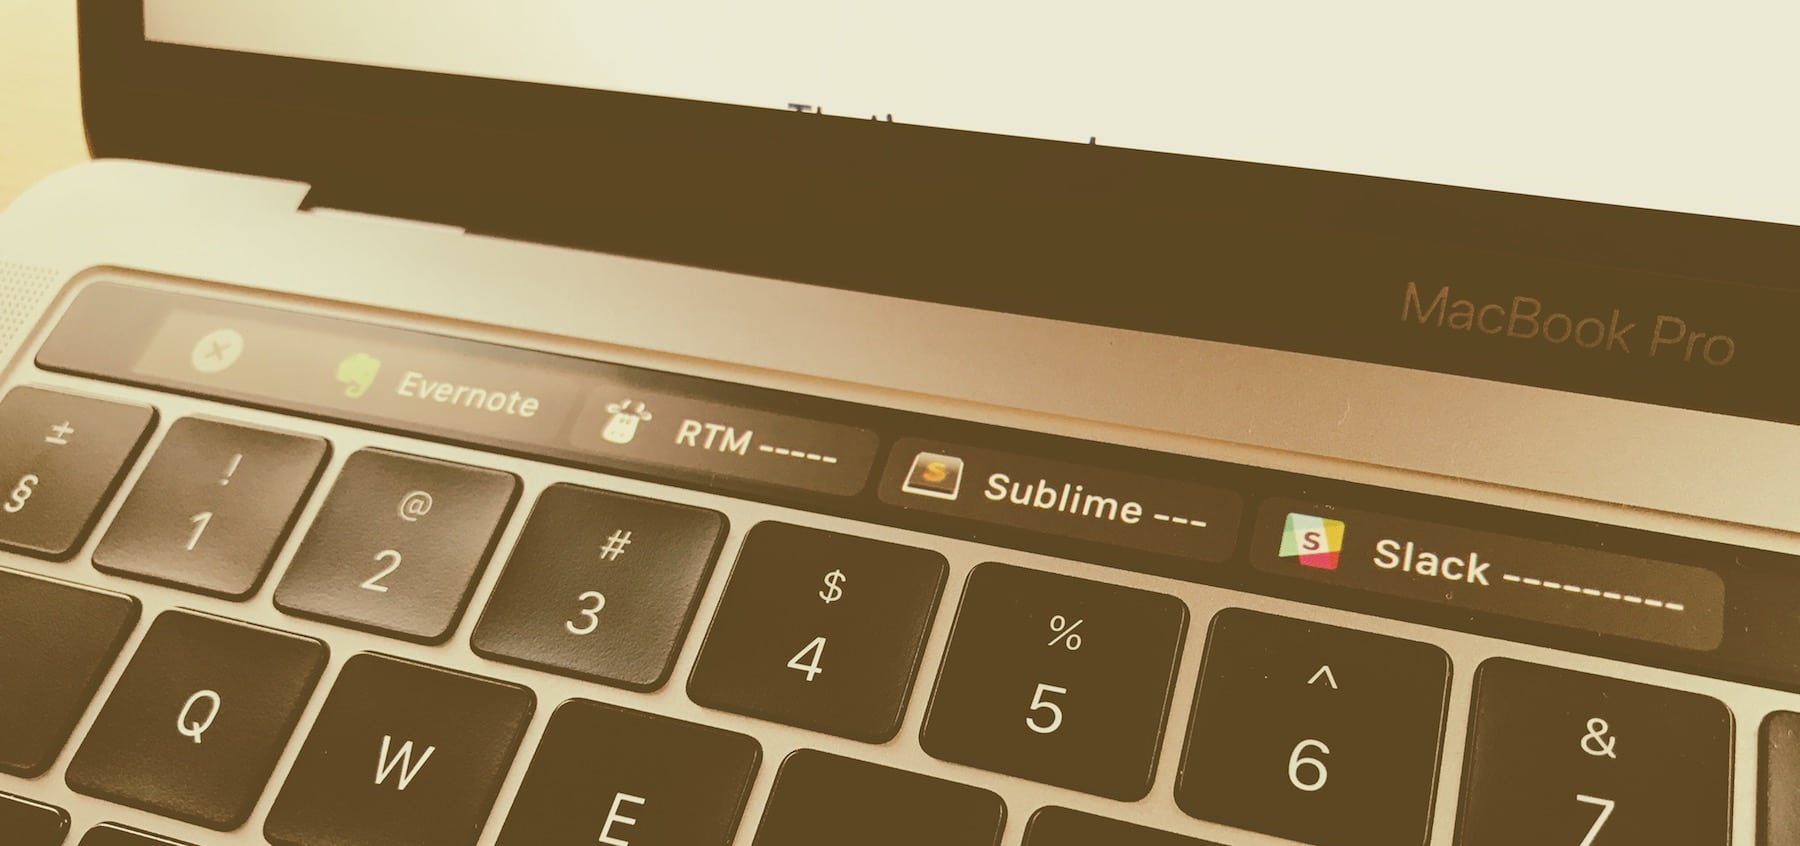 macbook pro touch